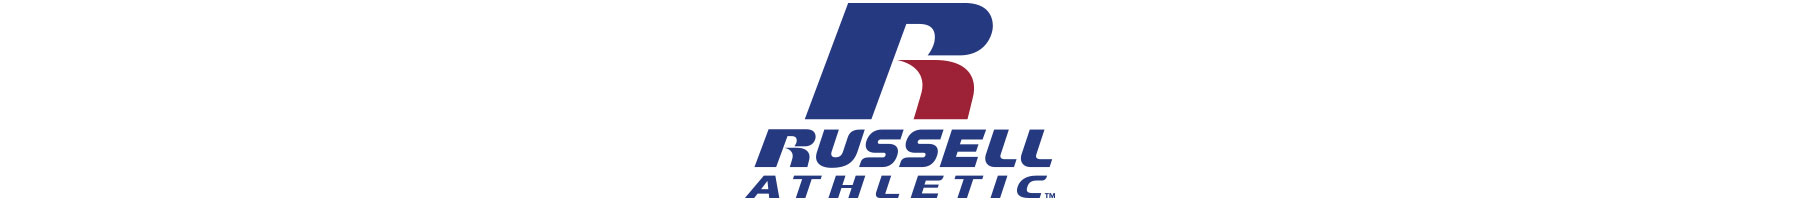 DrJays.com - Russell Athletic